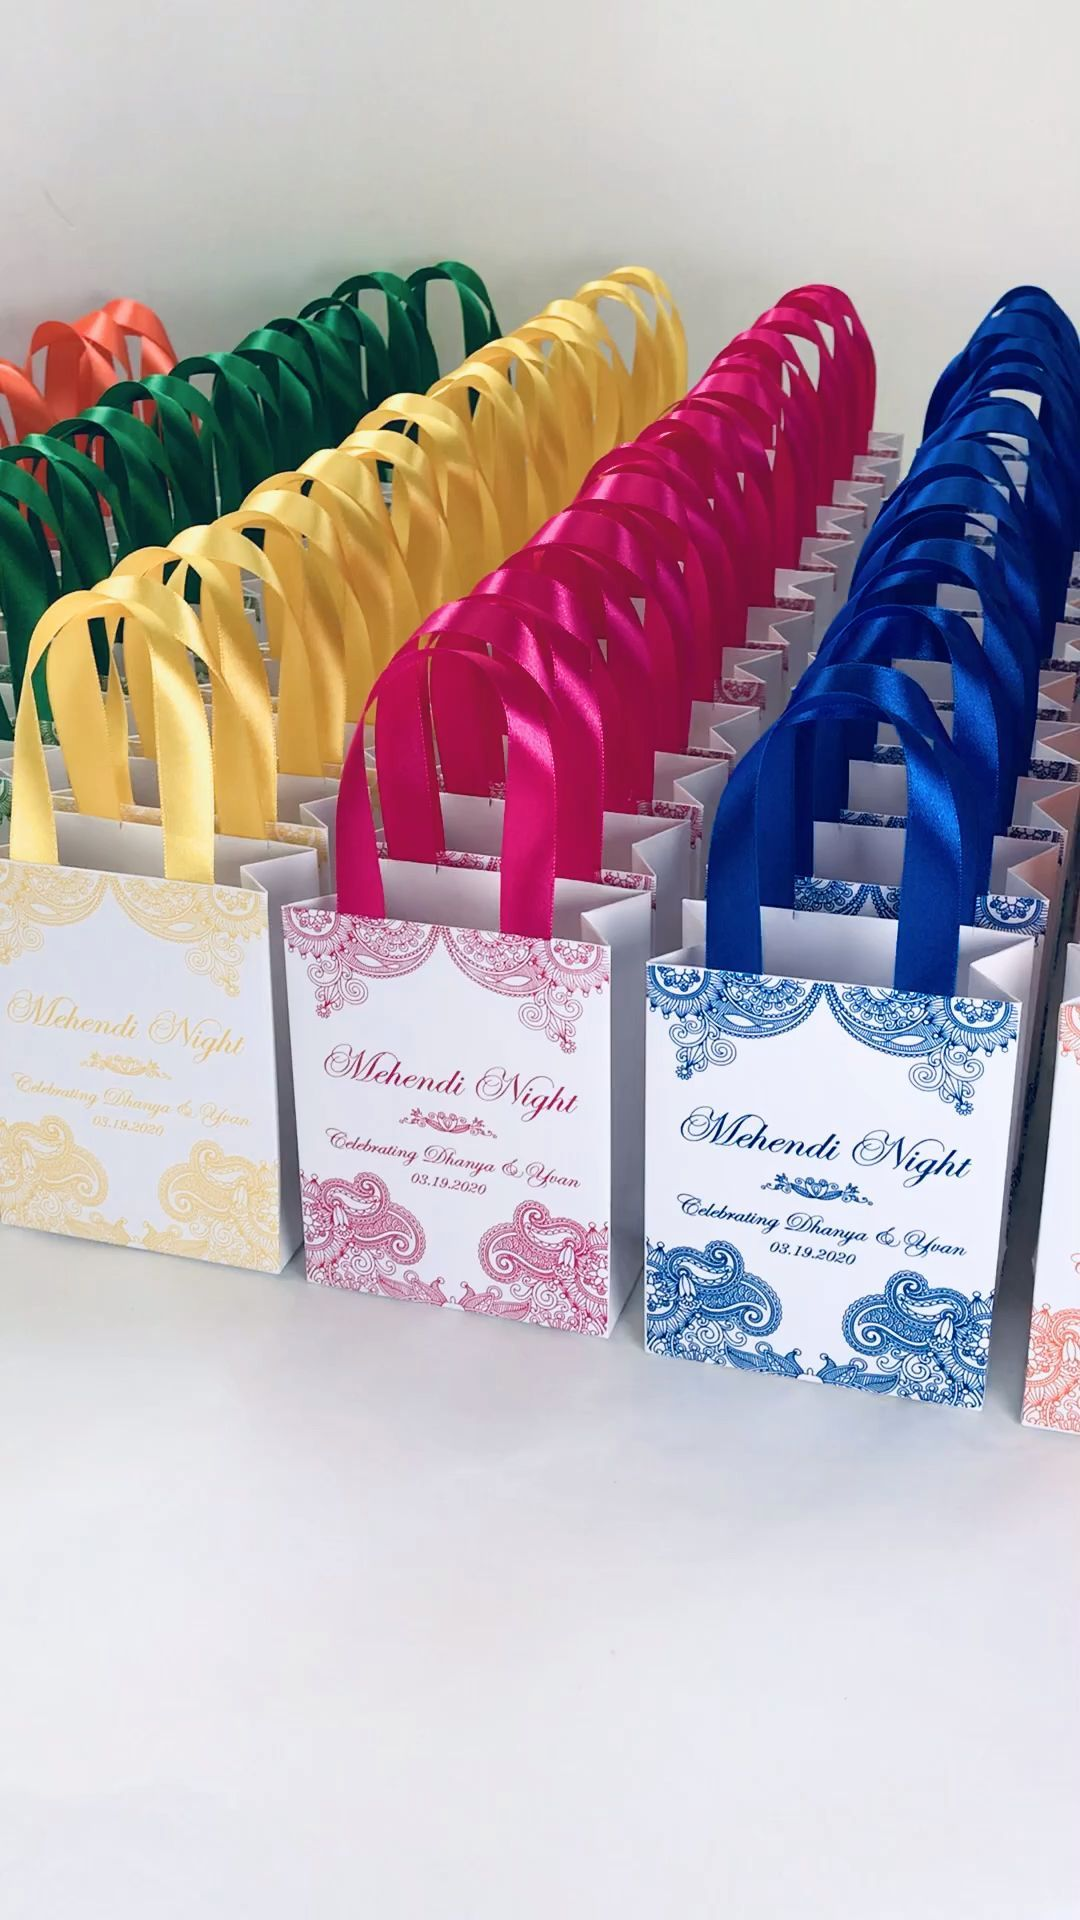 25 Mehendi Night Gift Bags With Satin Ribbon Your Names Etsy Elegant Personalized Indi In 2020 Indian Wedding Favors Edible Wedding Favors Wedding Favor Gift Bags